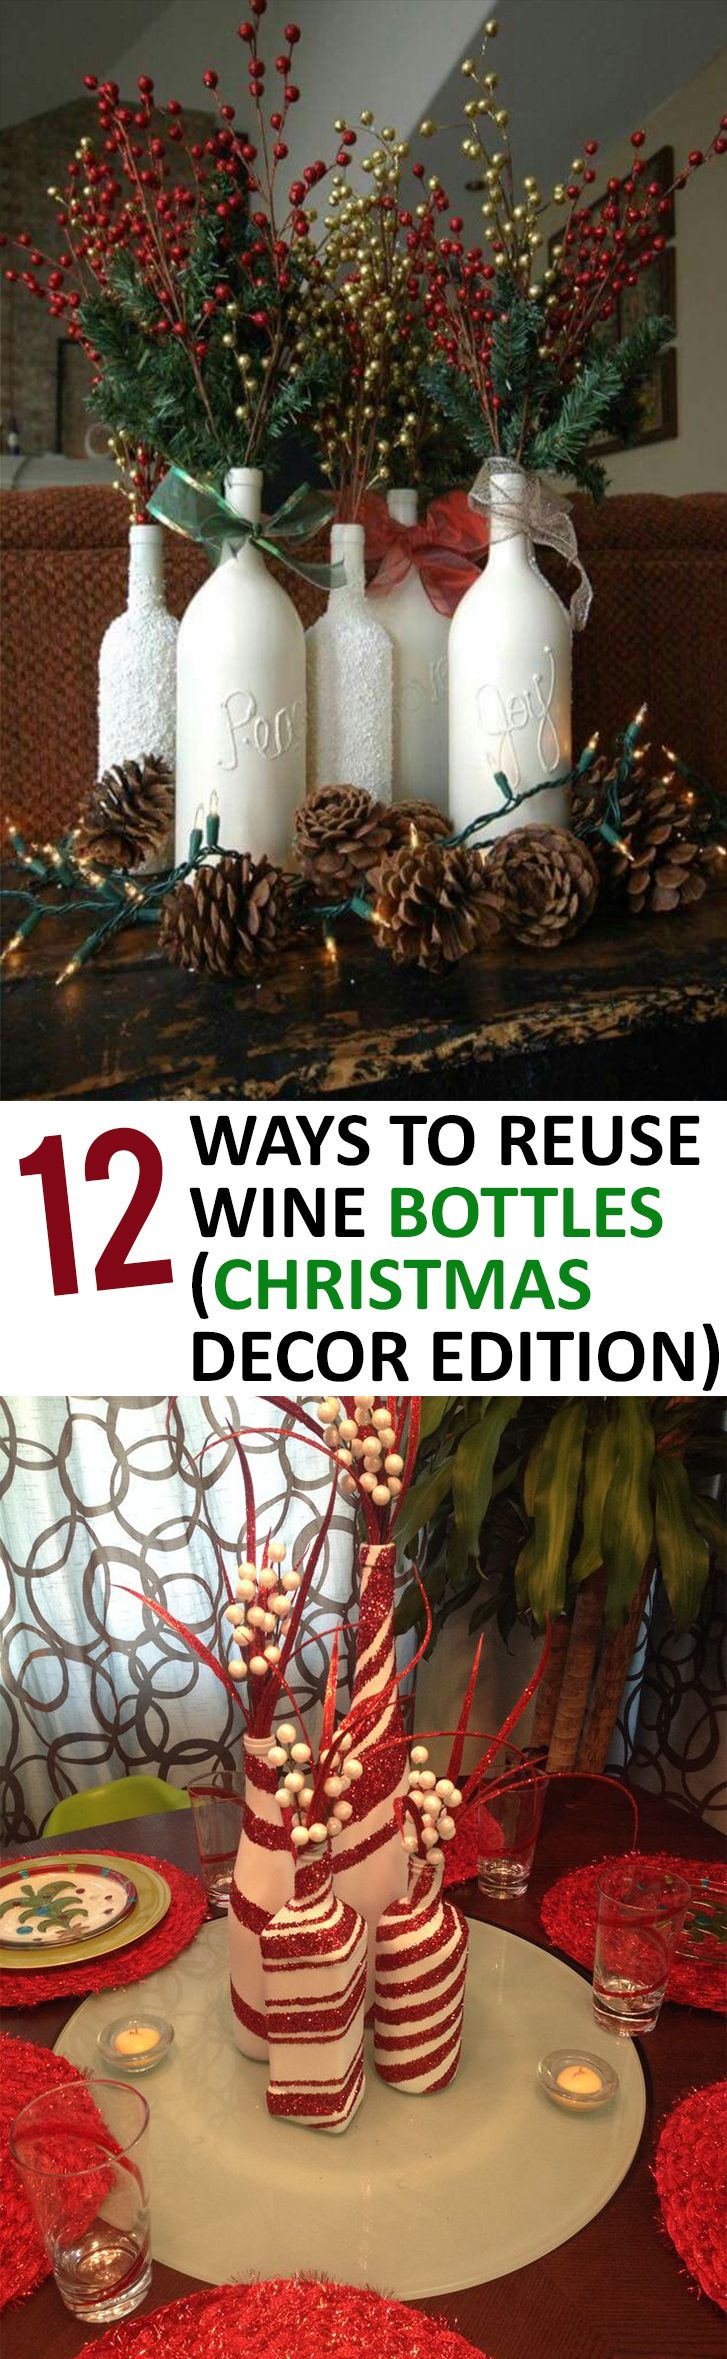 This must be the ultimate christmas yard decoration - 12 Ways To Reuse Wine Bottles Christmas Decor Edition